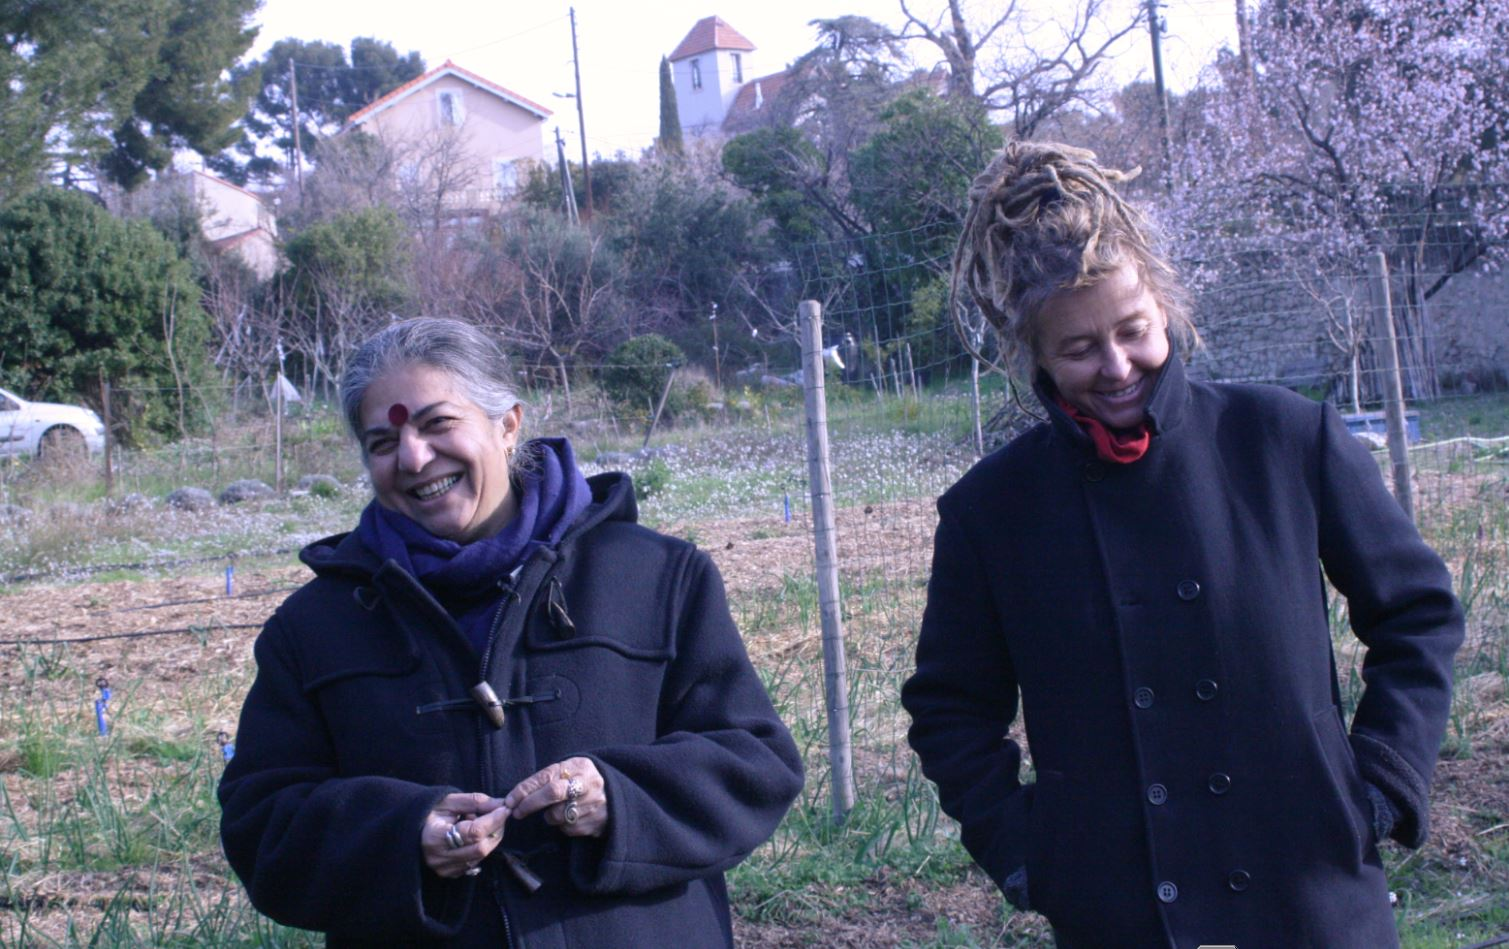 Vandana shiva marseille du th tre au jardin sans transition - Kiosque famille salon de provence ...